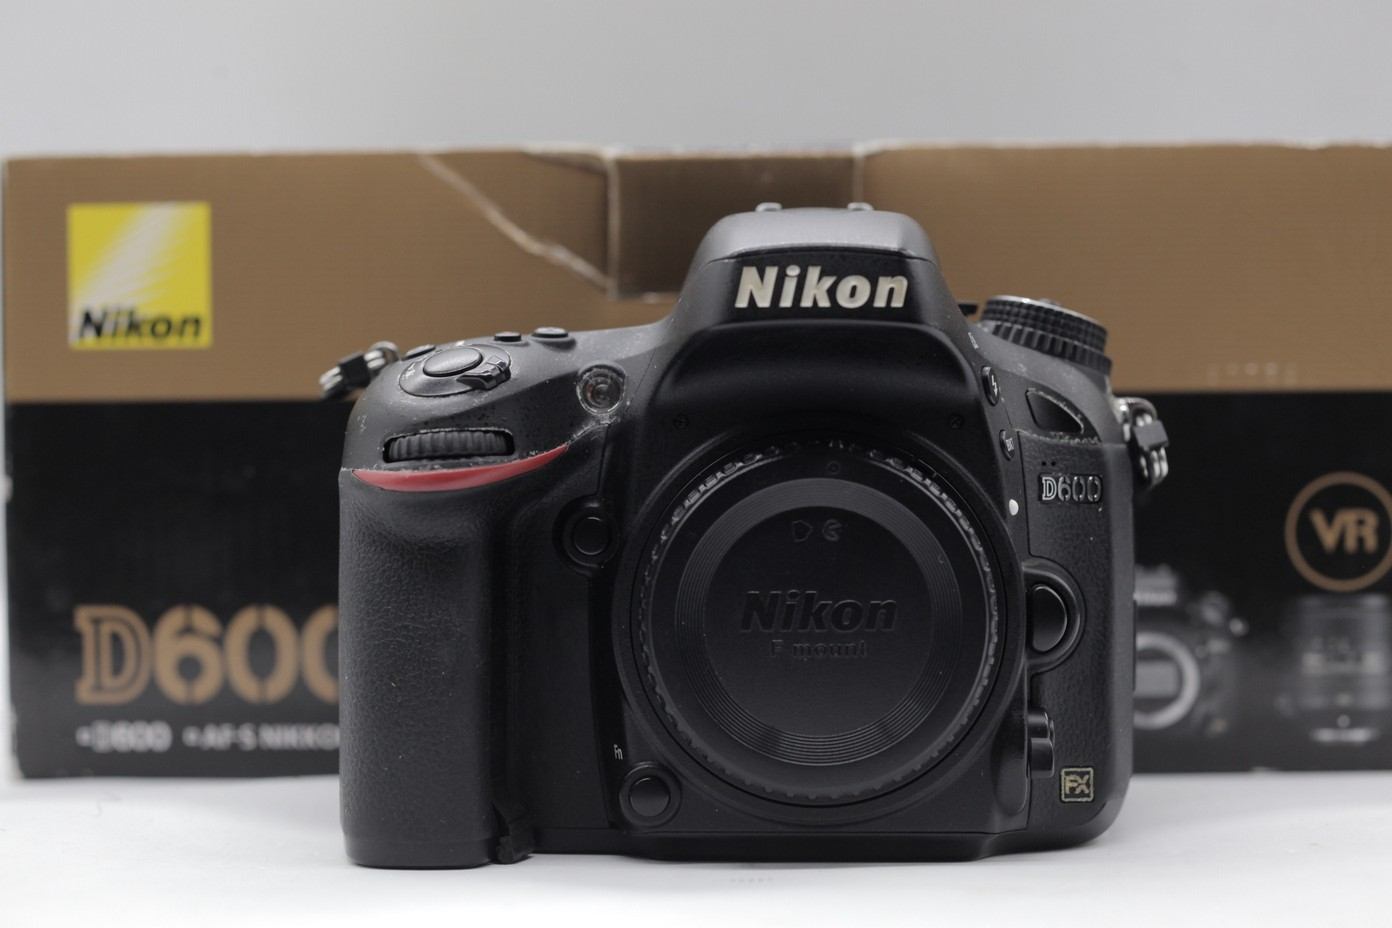 Used - Nikon D600 (SC 141K) (Body Only)